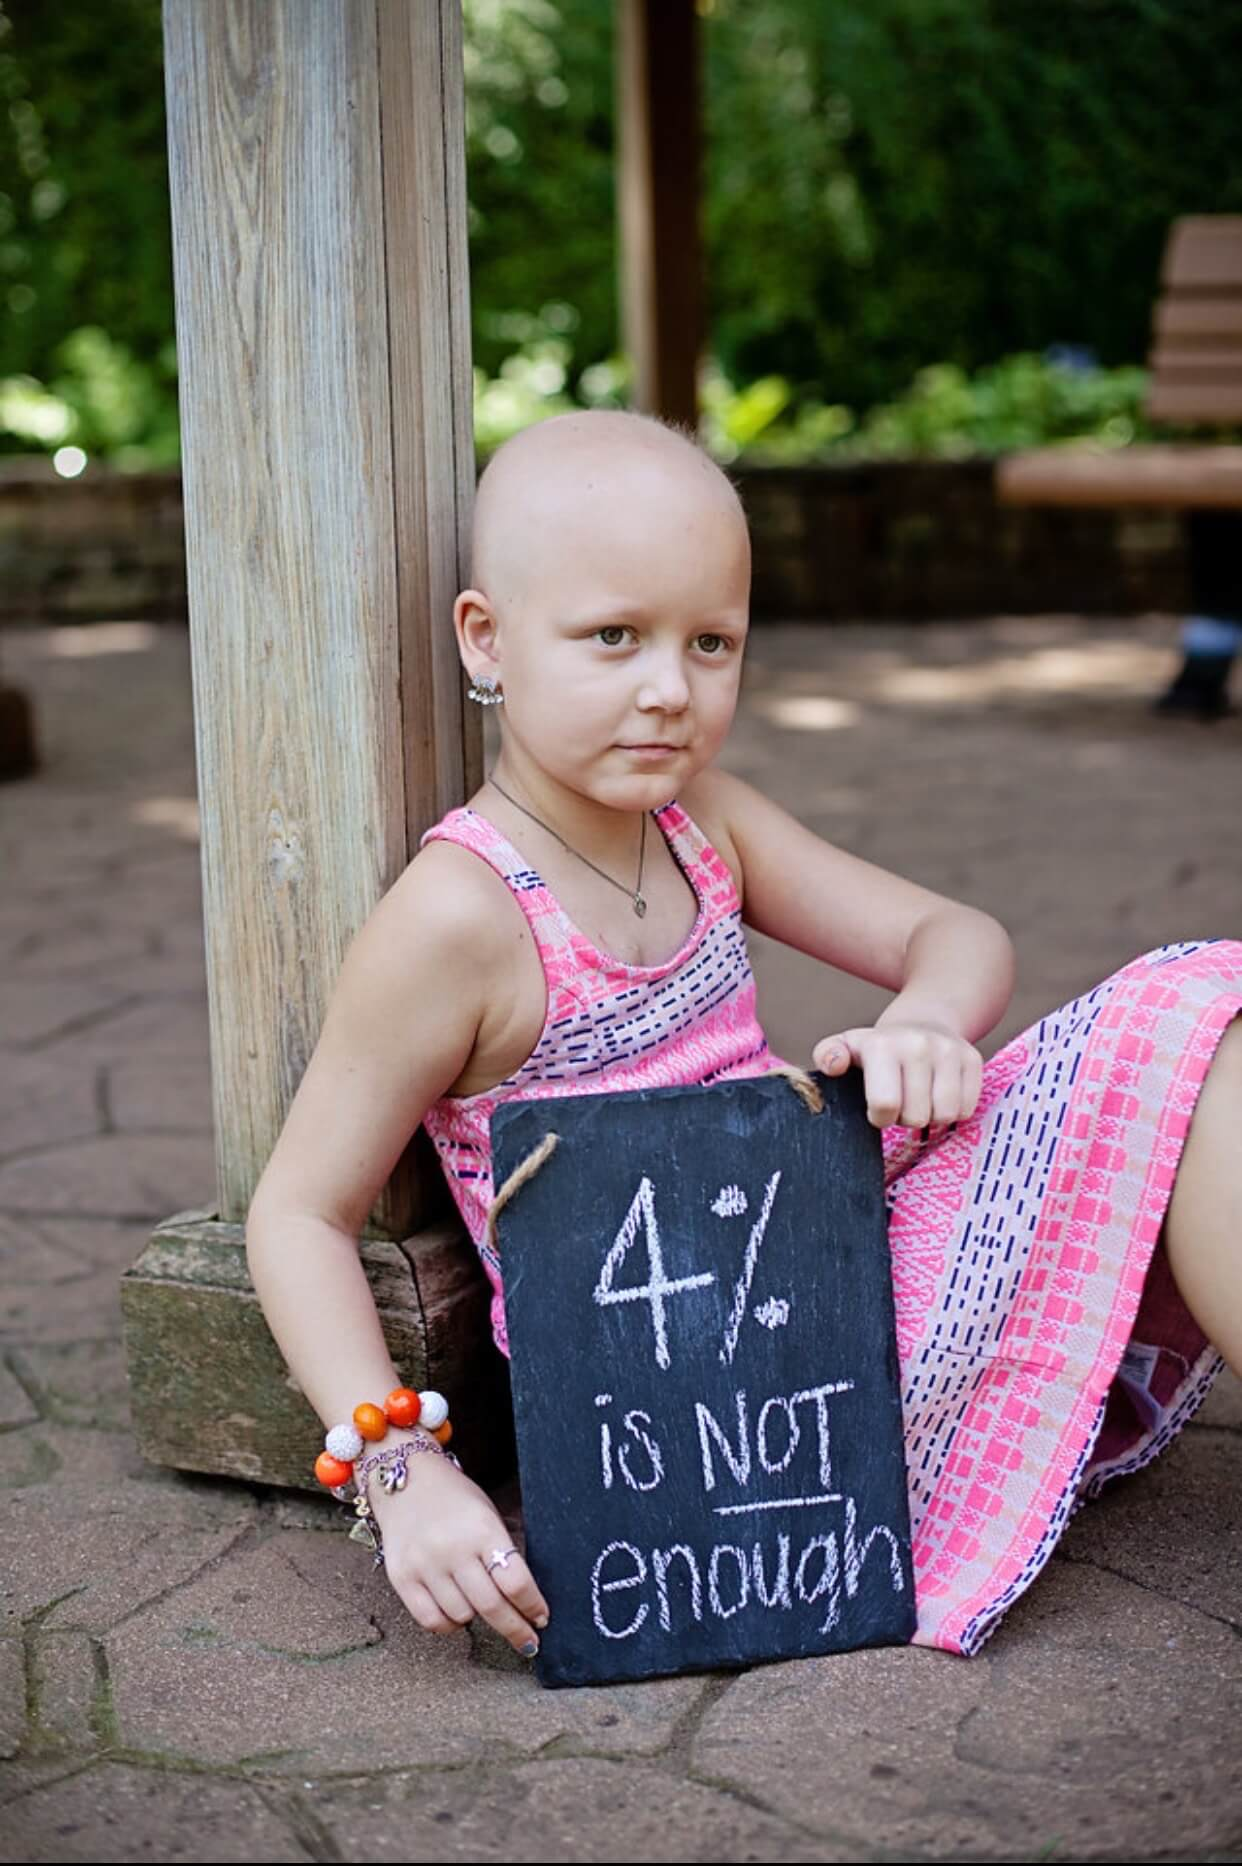 September: Childhood Cancer Awareness Month